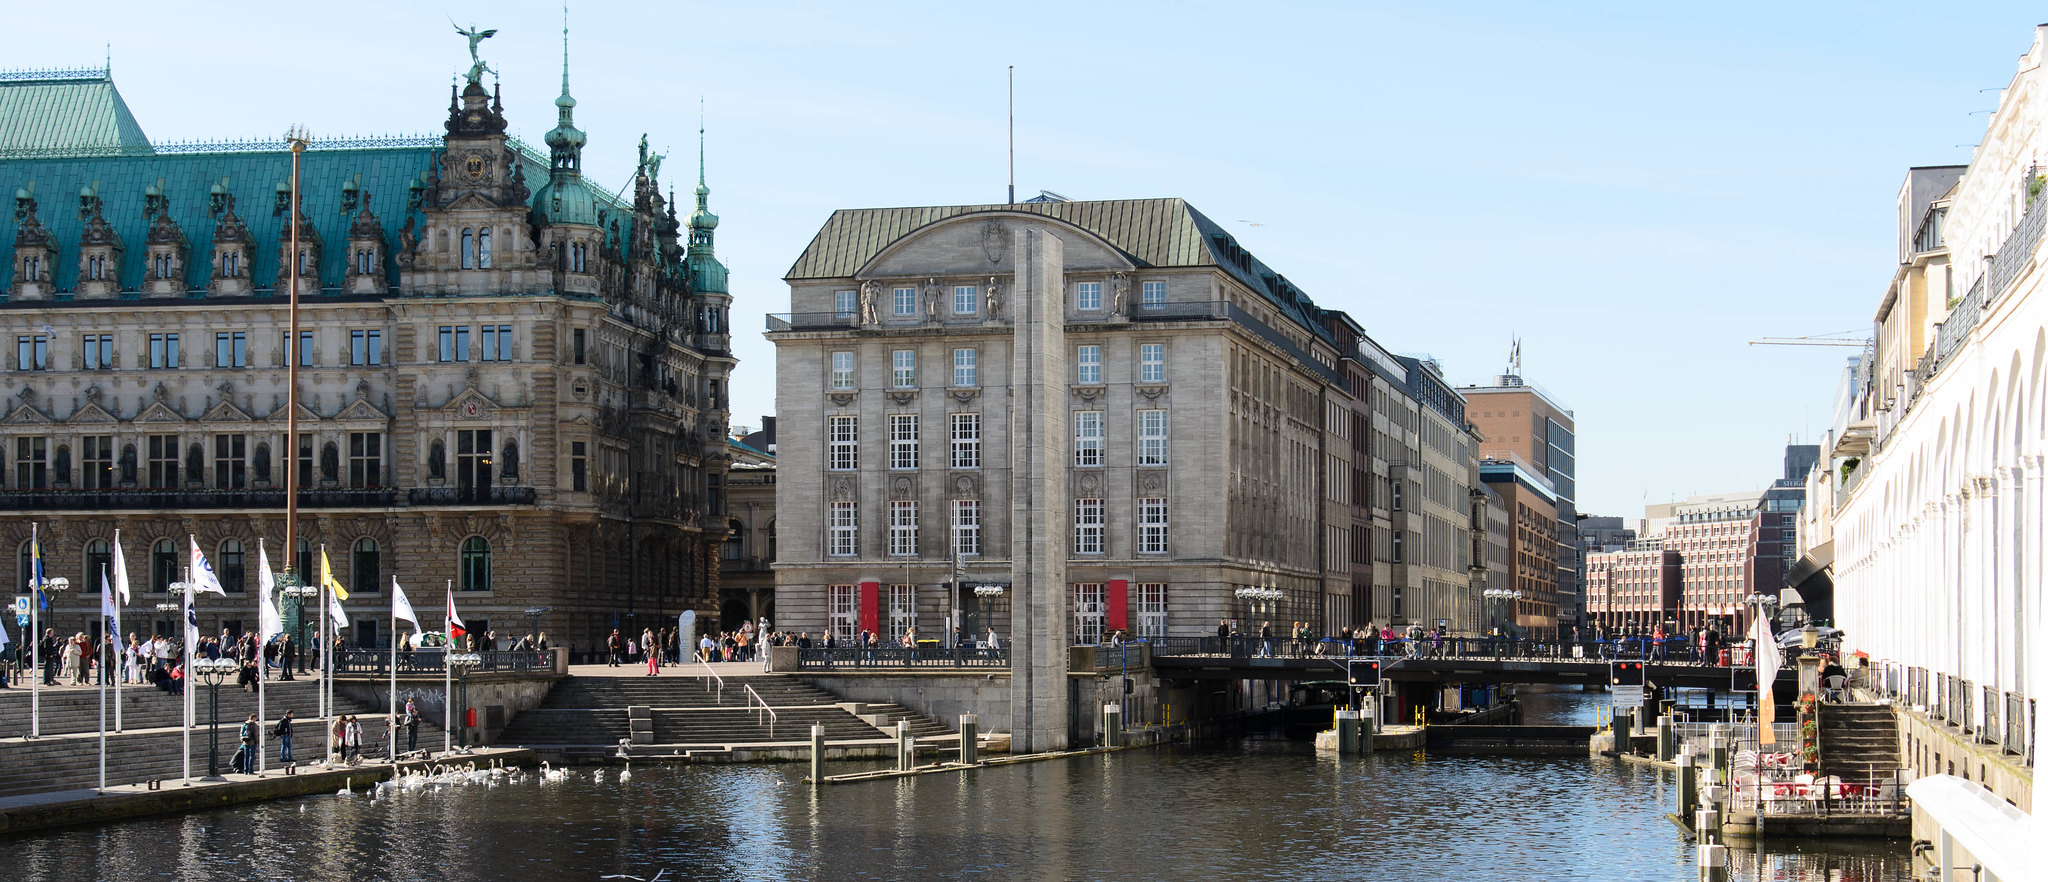 Hamburg town square and canal